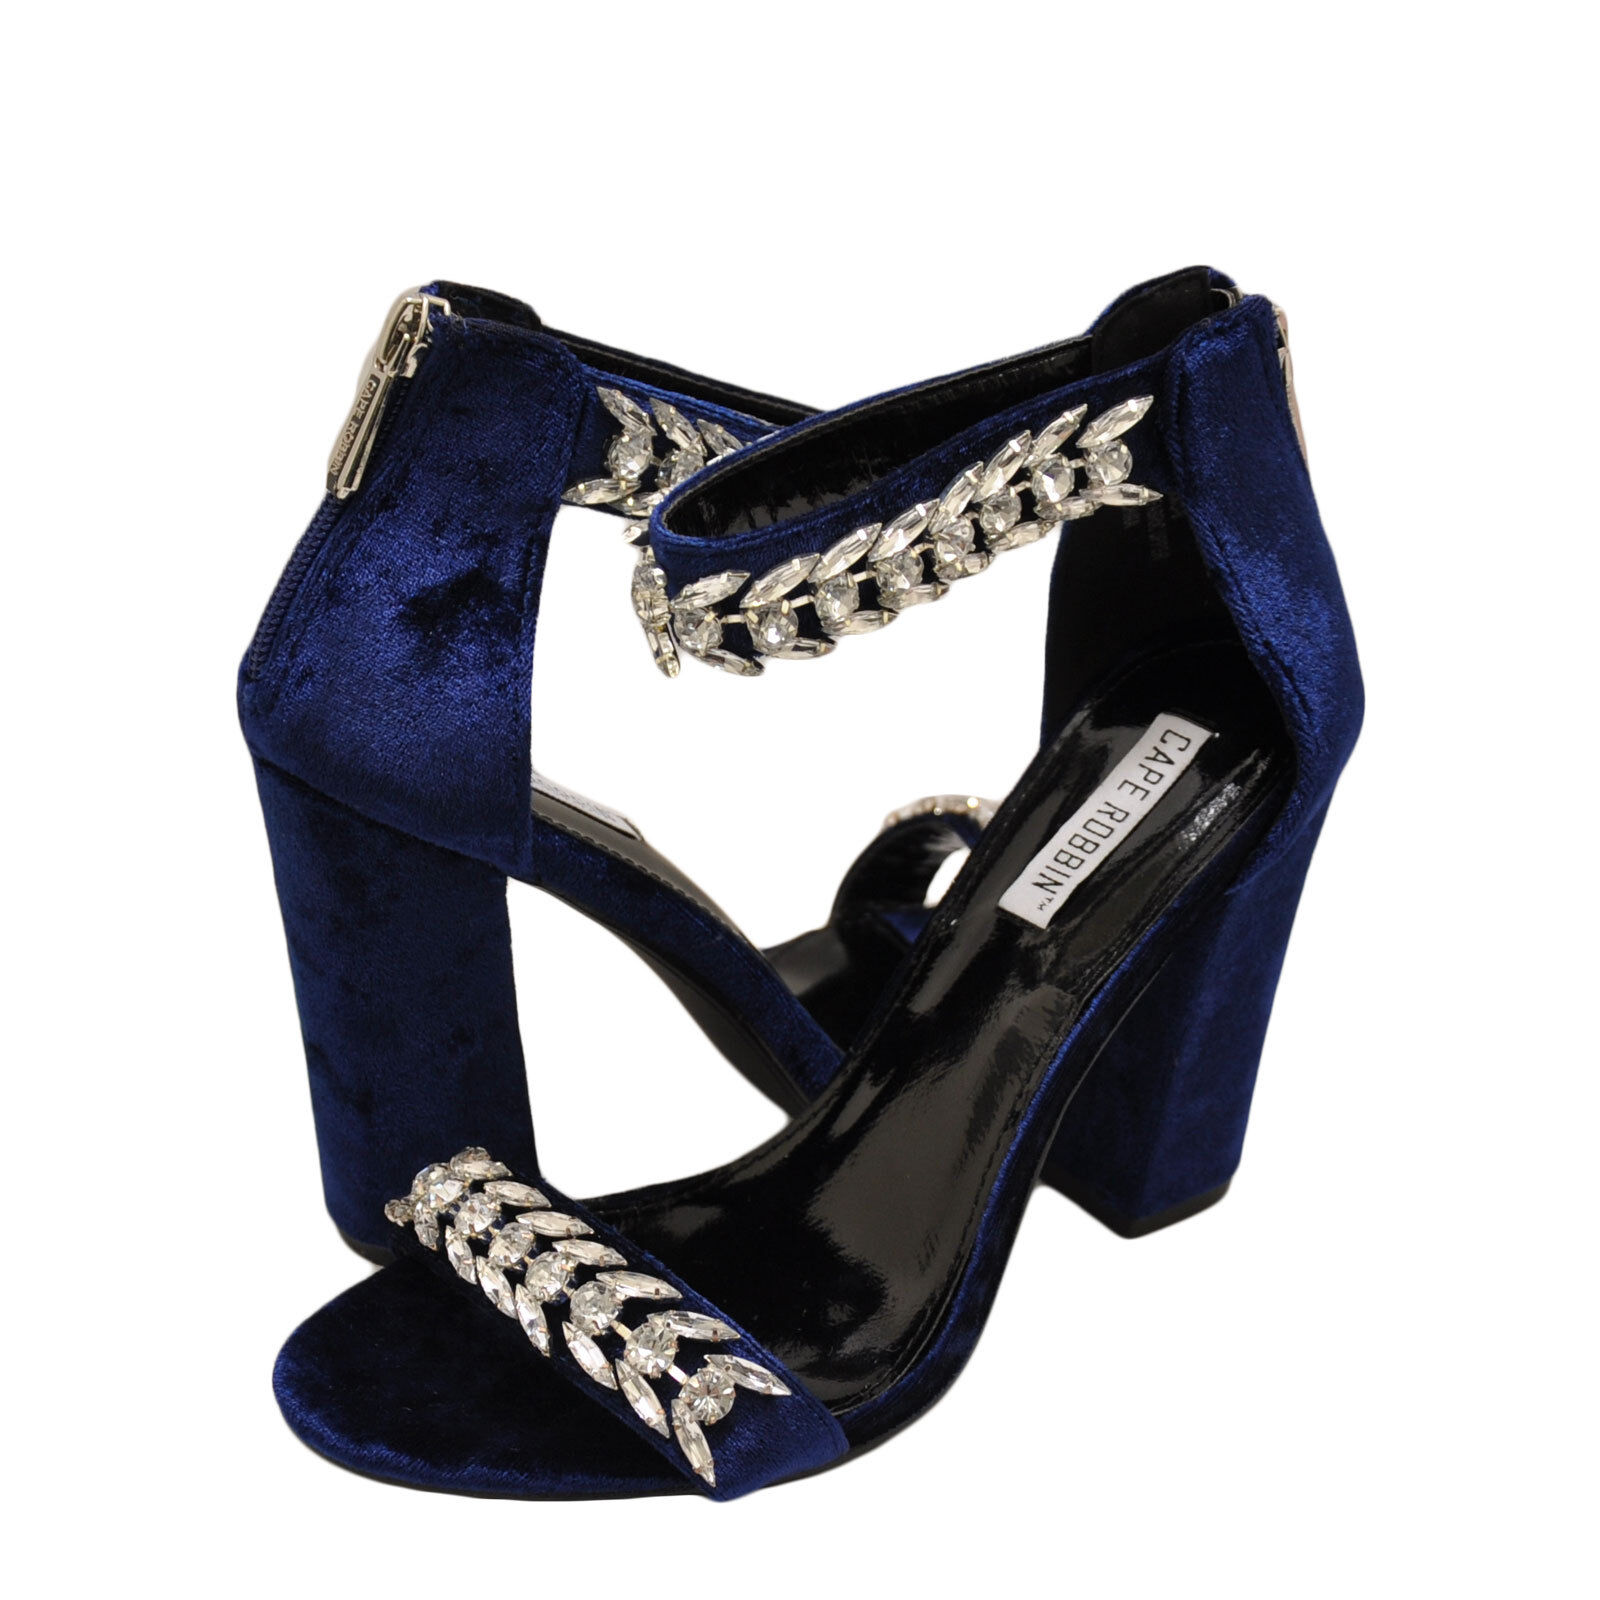 Women shoes Cape Robbin Ekko 9 Rhinestone Embellished Open Toe Heel bluee New